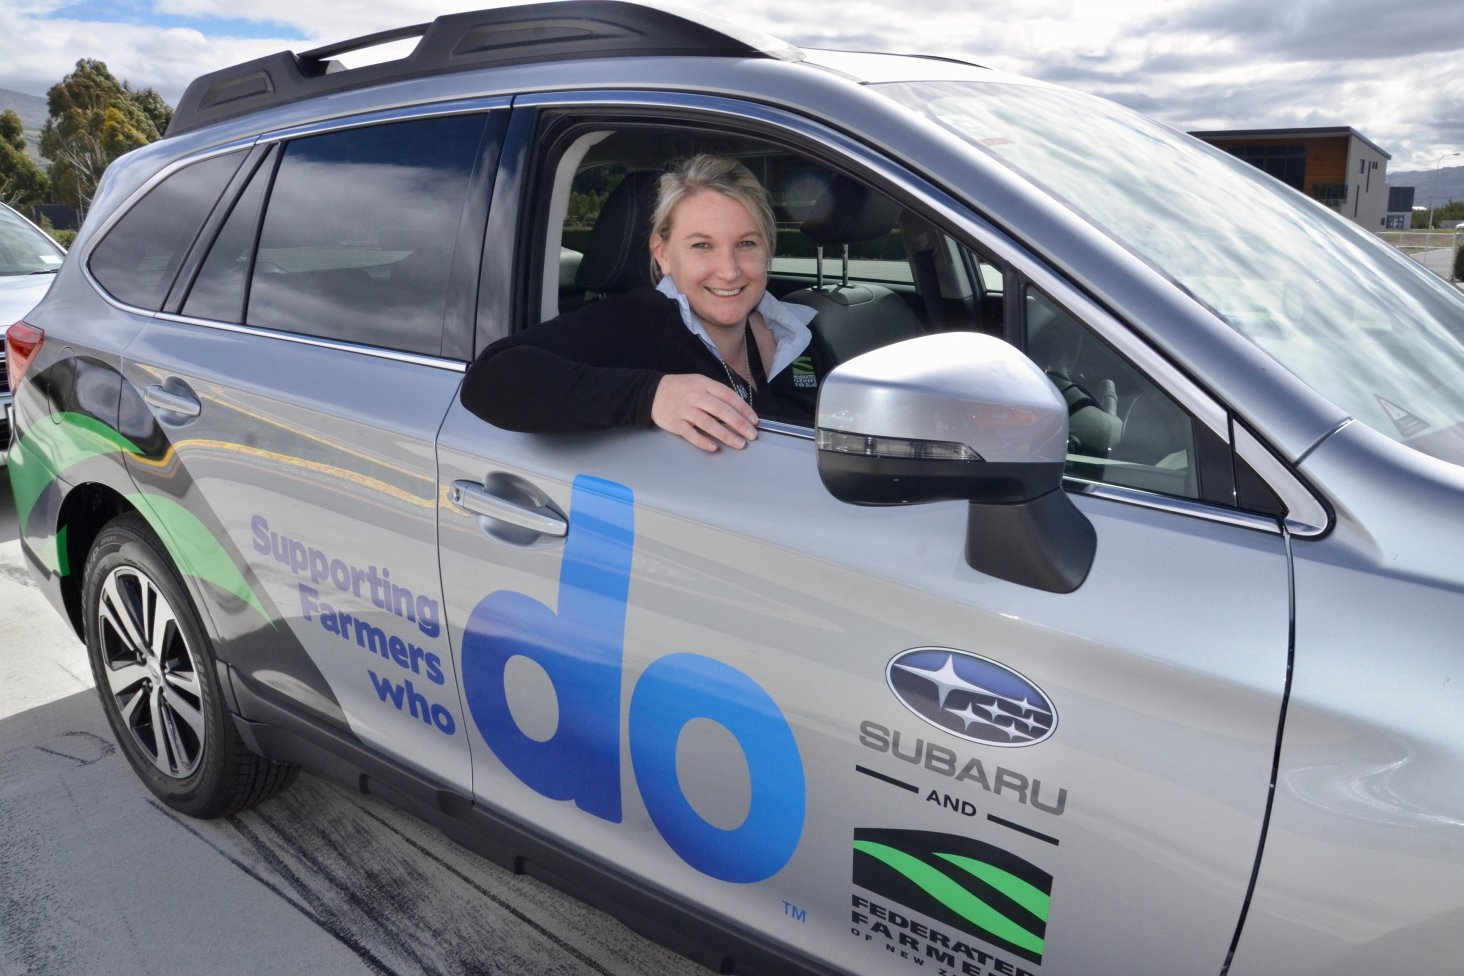 Laura Sanford, Federated Farmers Territory Manager with her new Subaru Outback